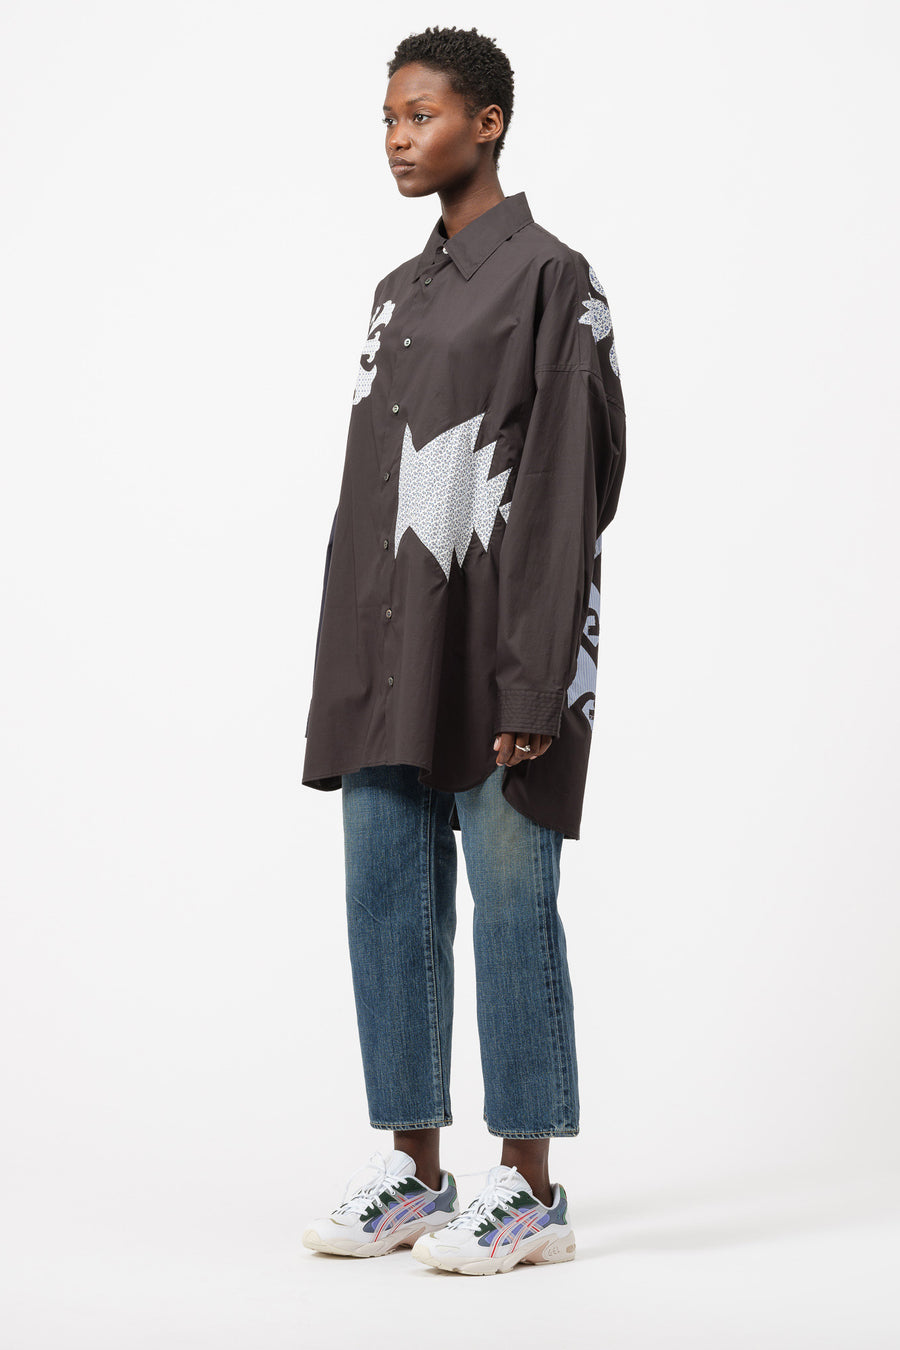 AMBUSH Patchwork Shirt in Black - Notre